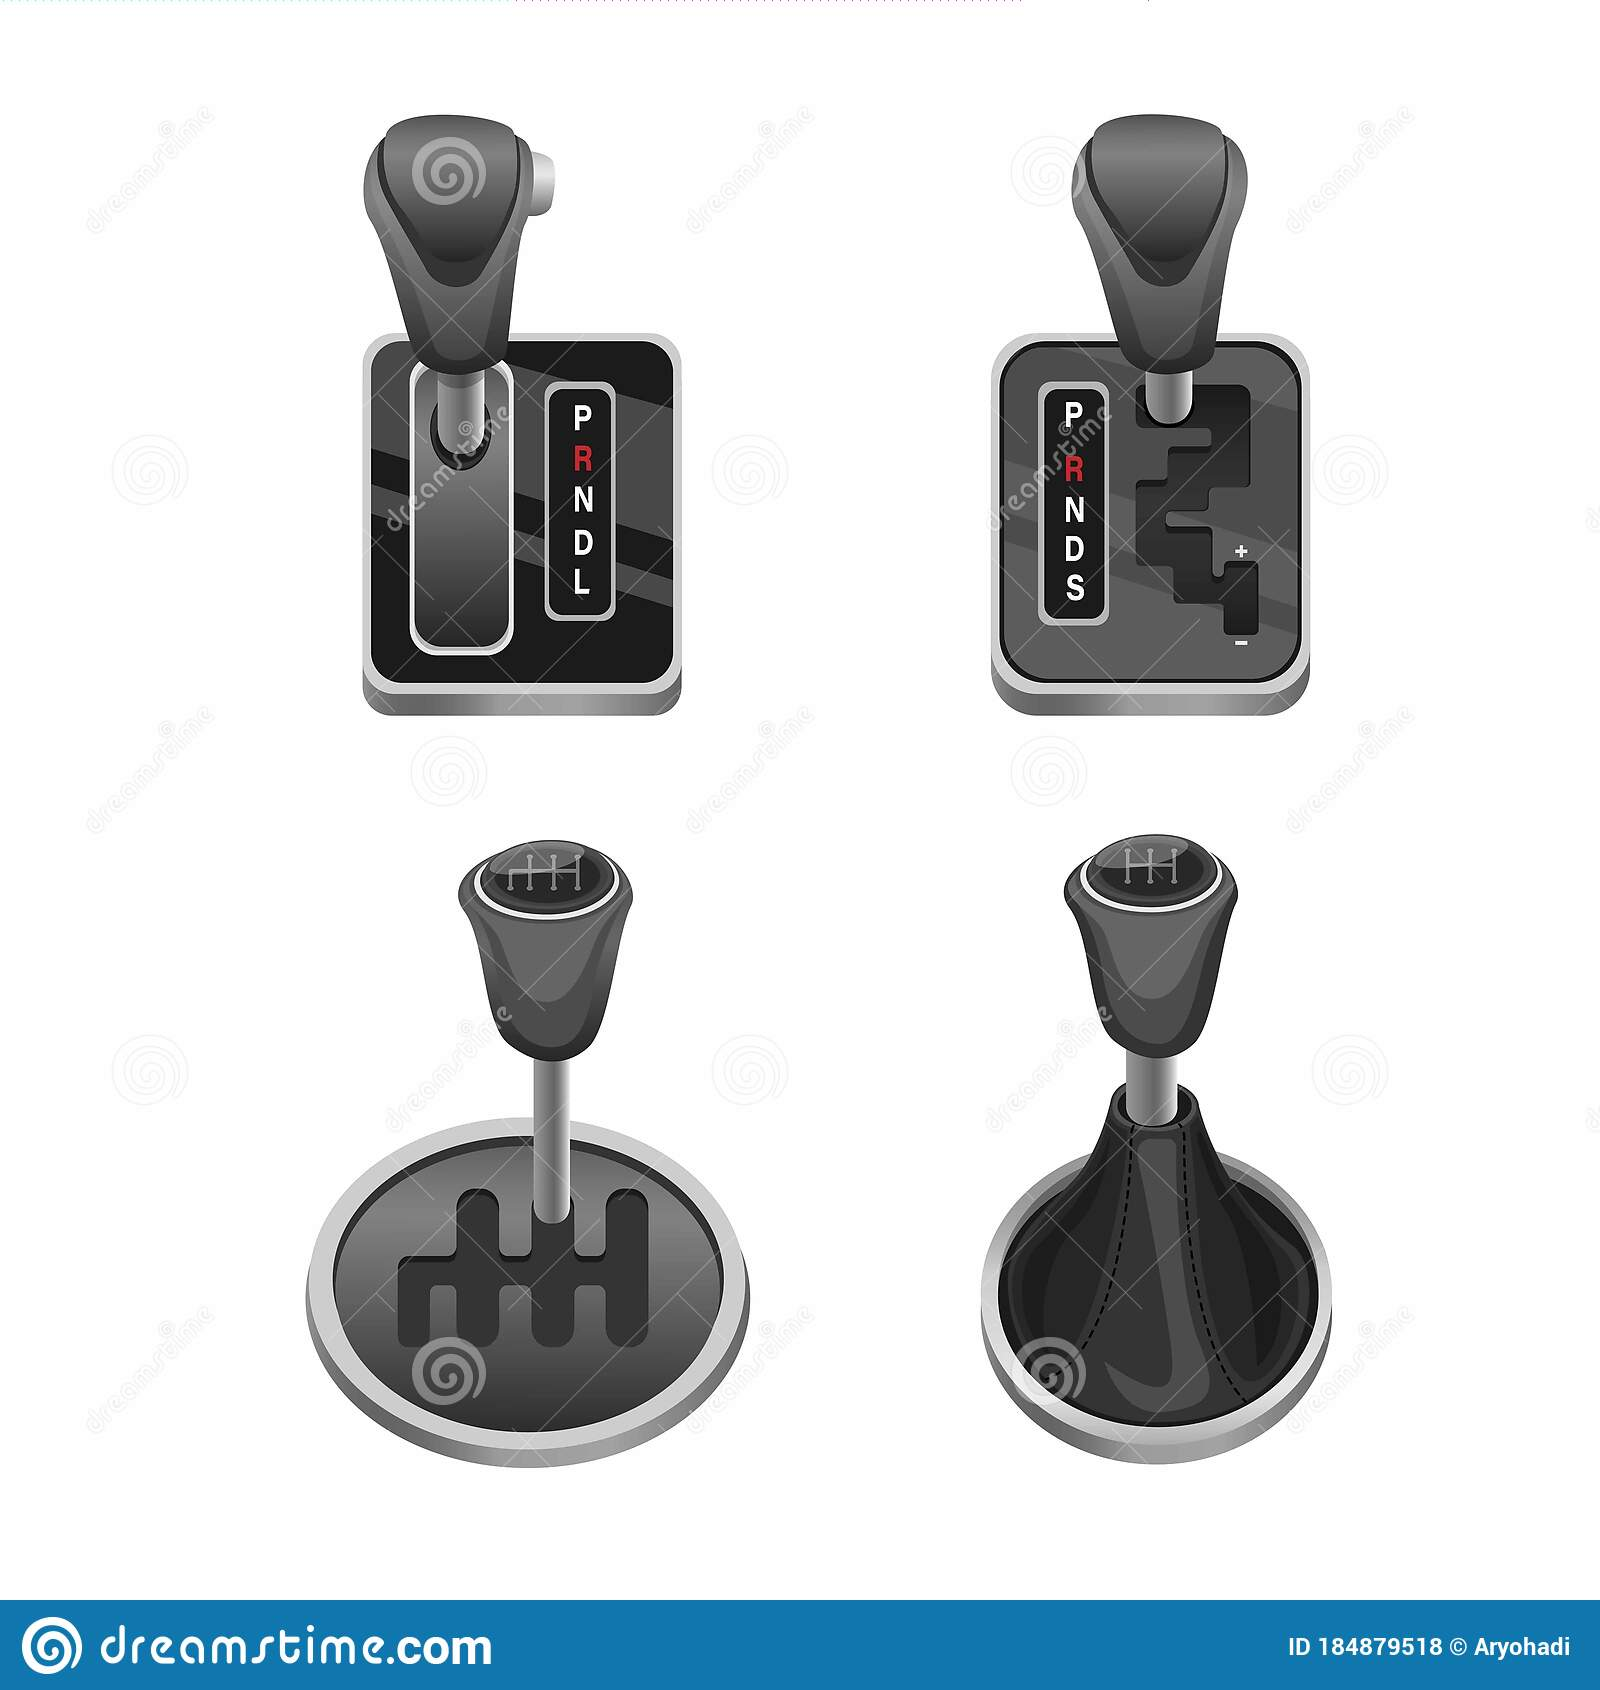 Car Transmission Lever In Automatic Semi Automatic And Manual Symbol Collection Icon Set Automotive Gear Lever Shift Concept Re Stock Vector Illustration Of Manual License 184879518